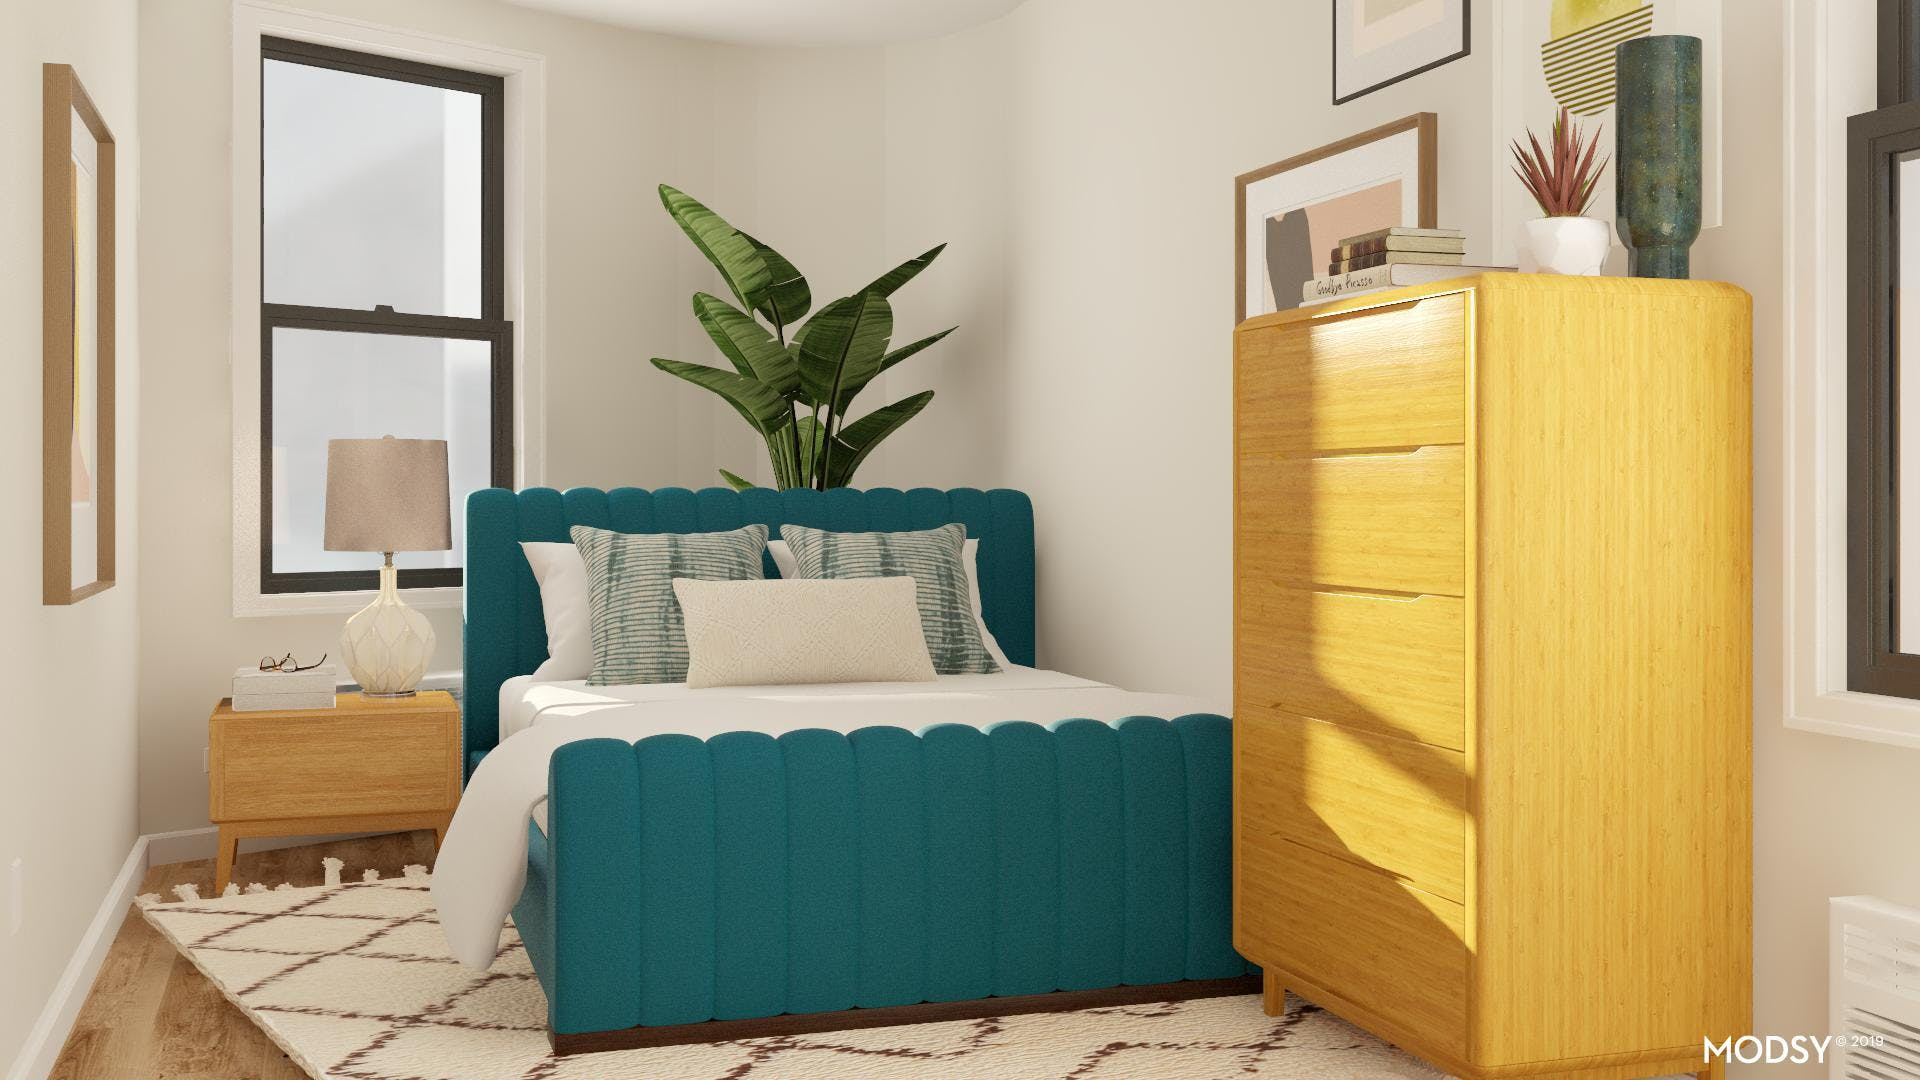 Tricky Bedroom Layout with Mid-Century Style